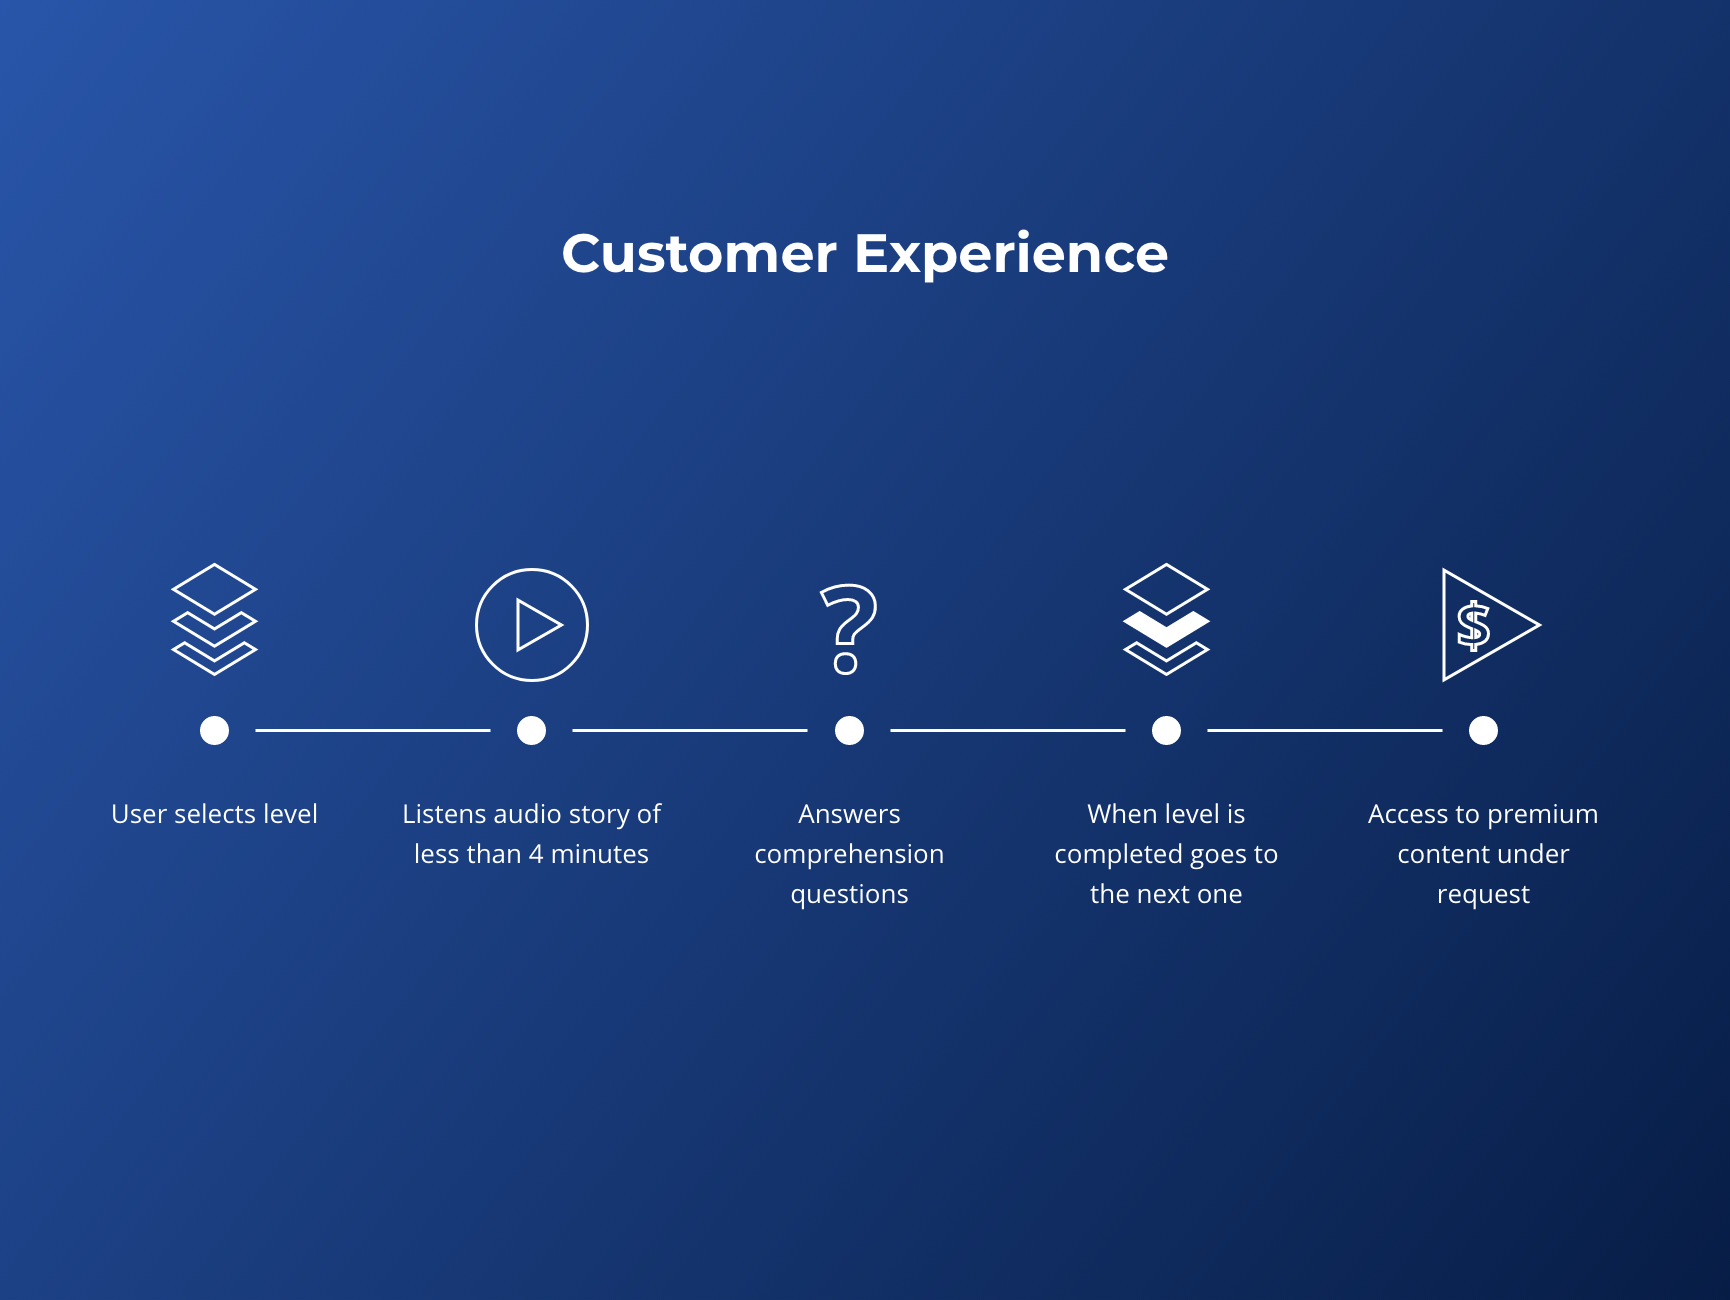 customer experience in 5 steps